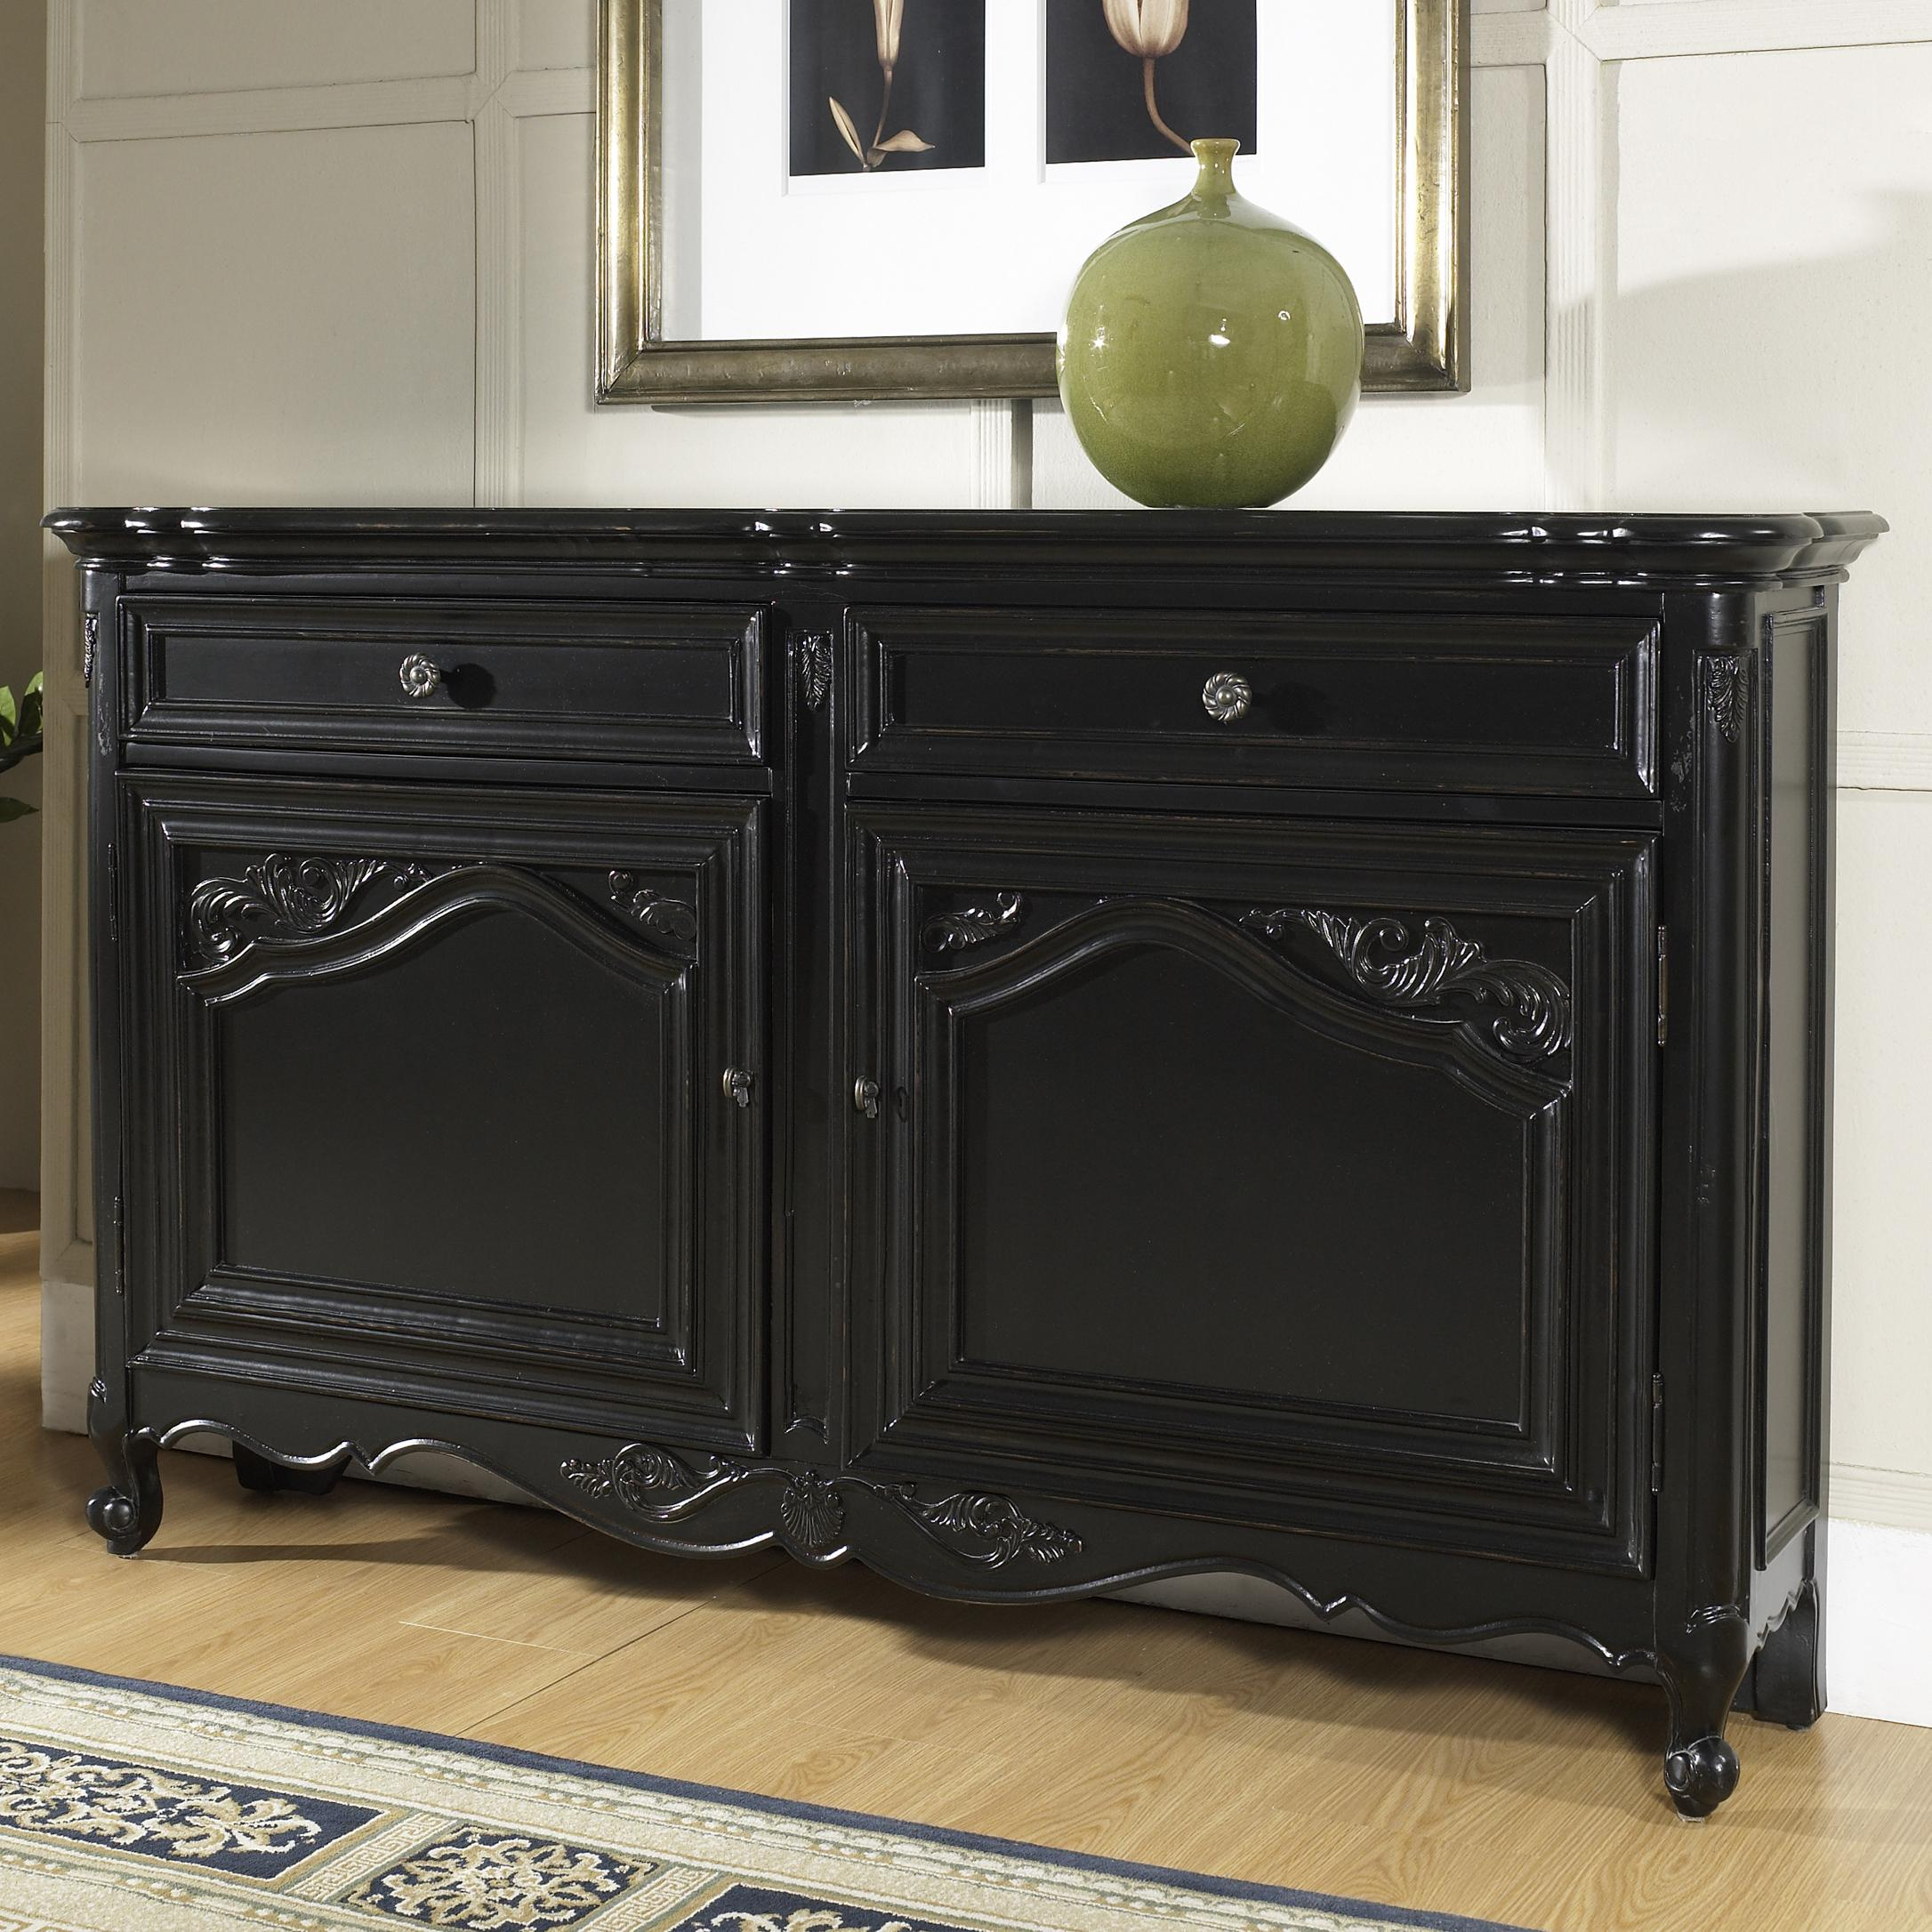 Pulaski Furniture Accents Hall Console - Item Number: 917006